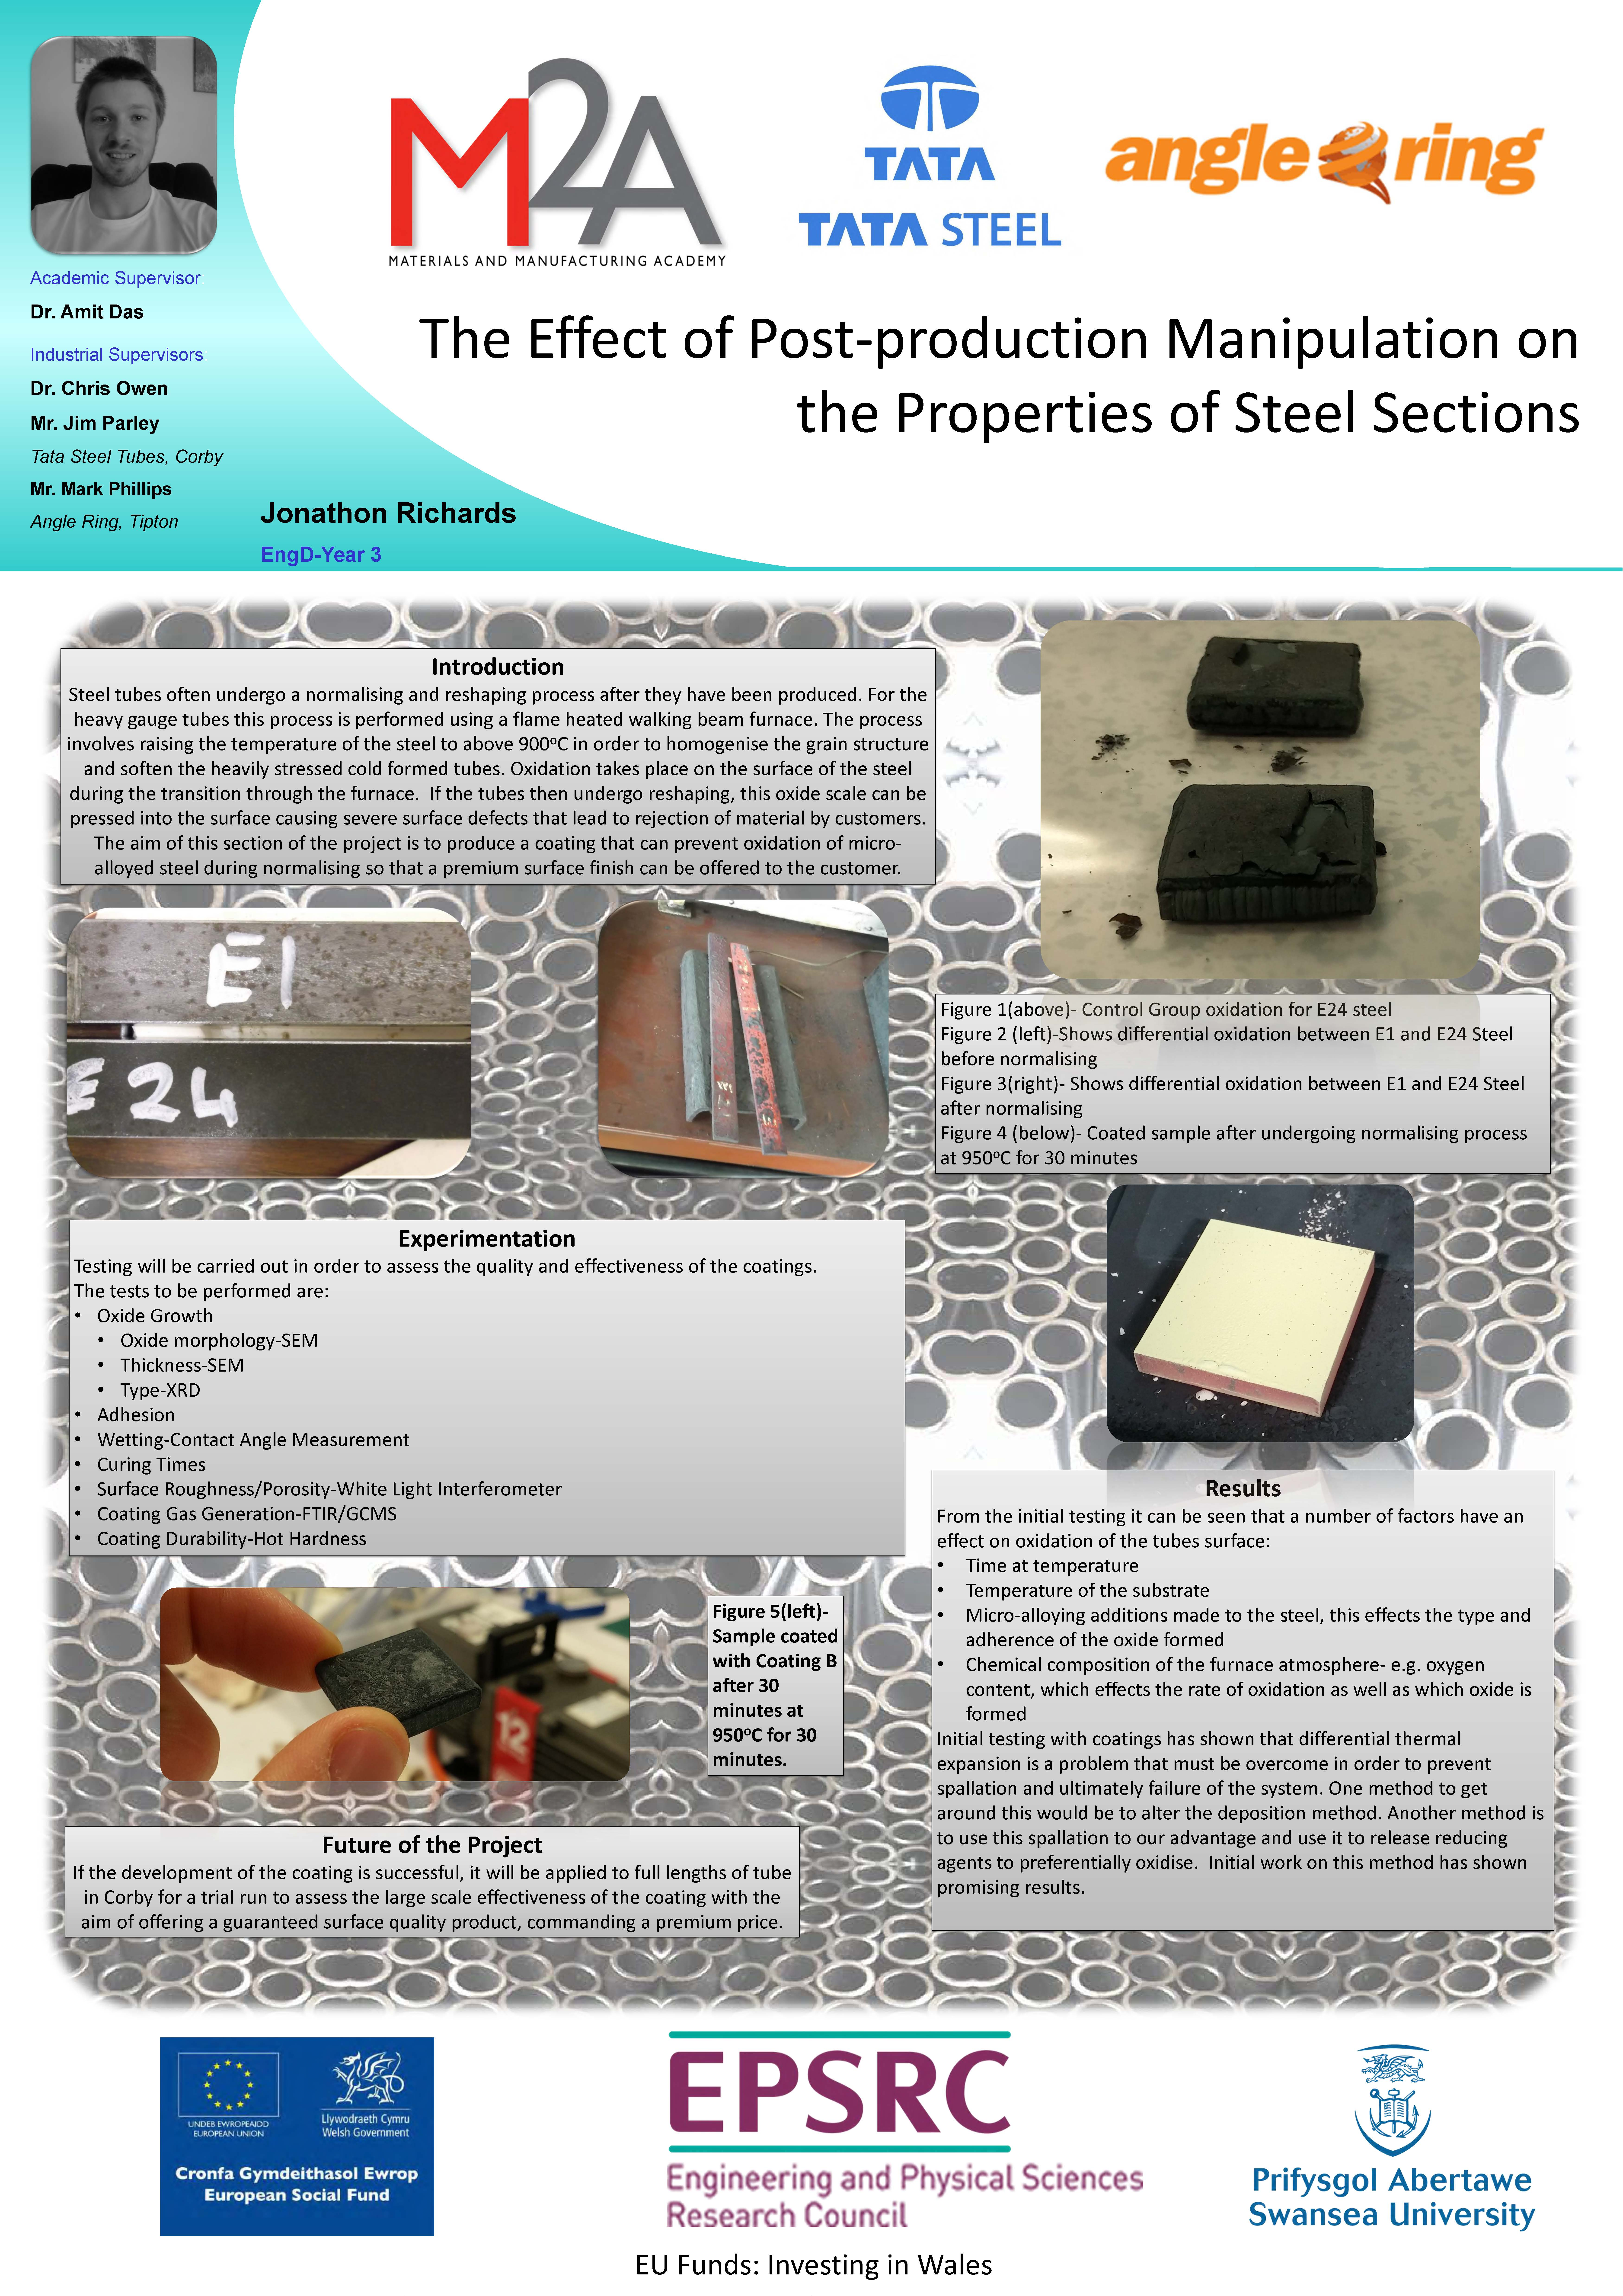 The Effect of Post-production Manipulation on the Properties of Steel Sections